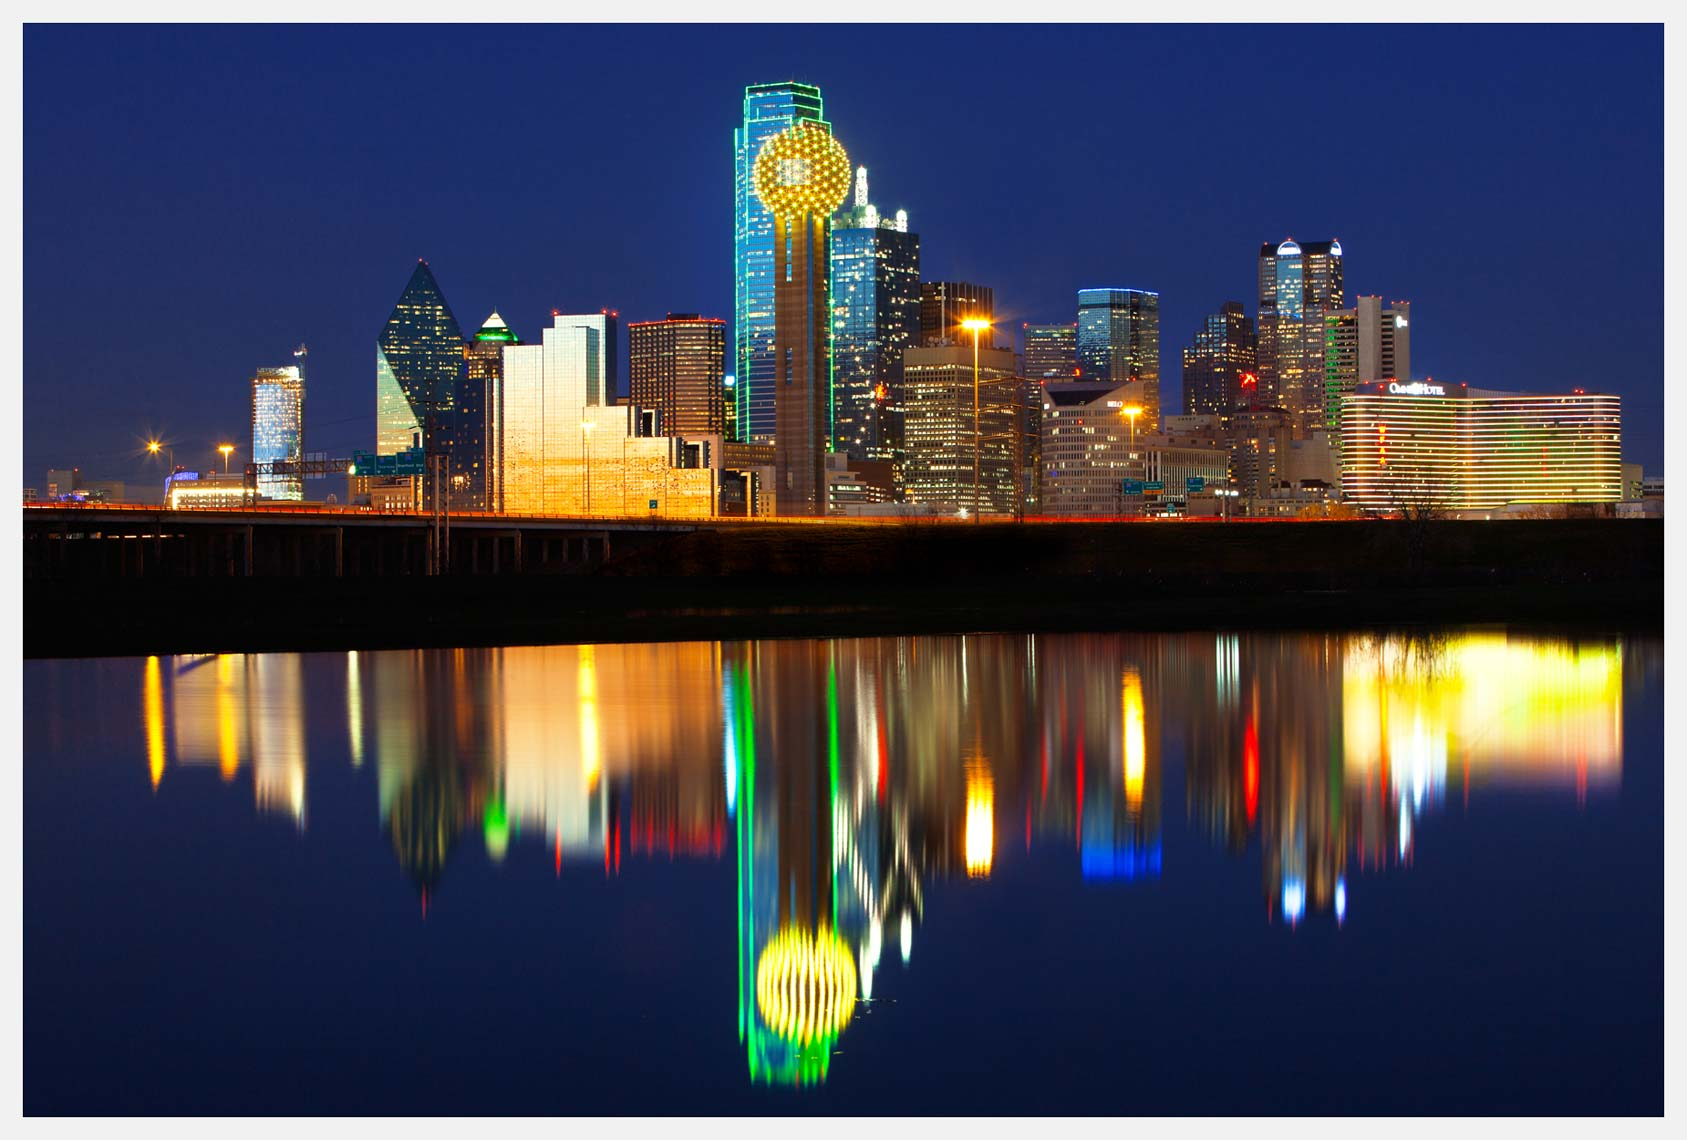 Dallas Skyline at Night With City Reflection in River